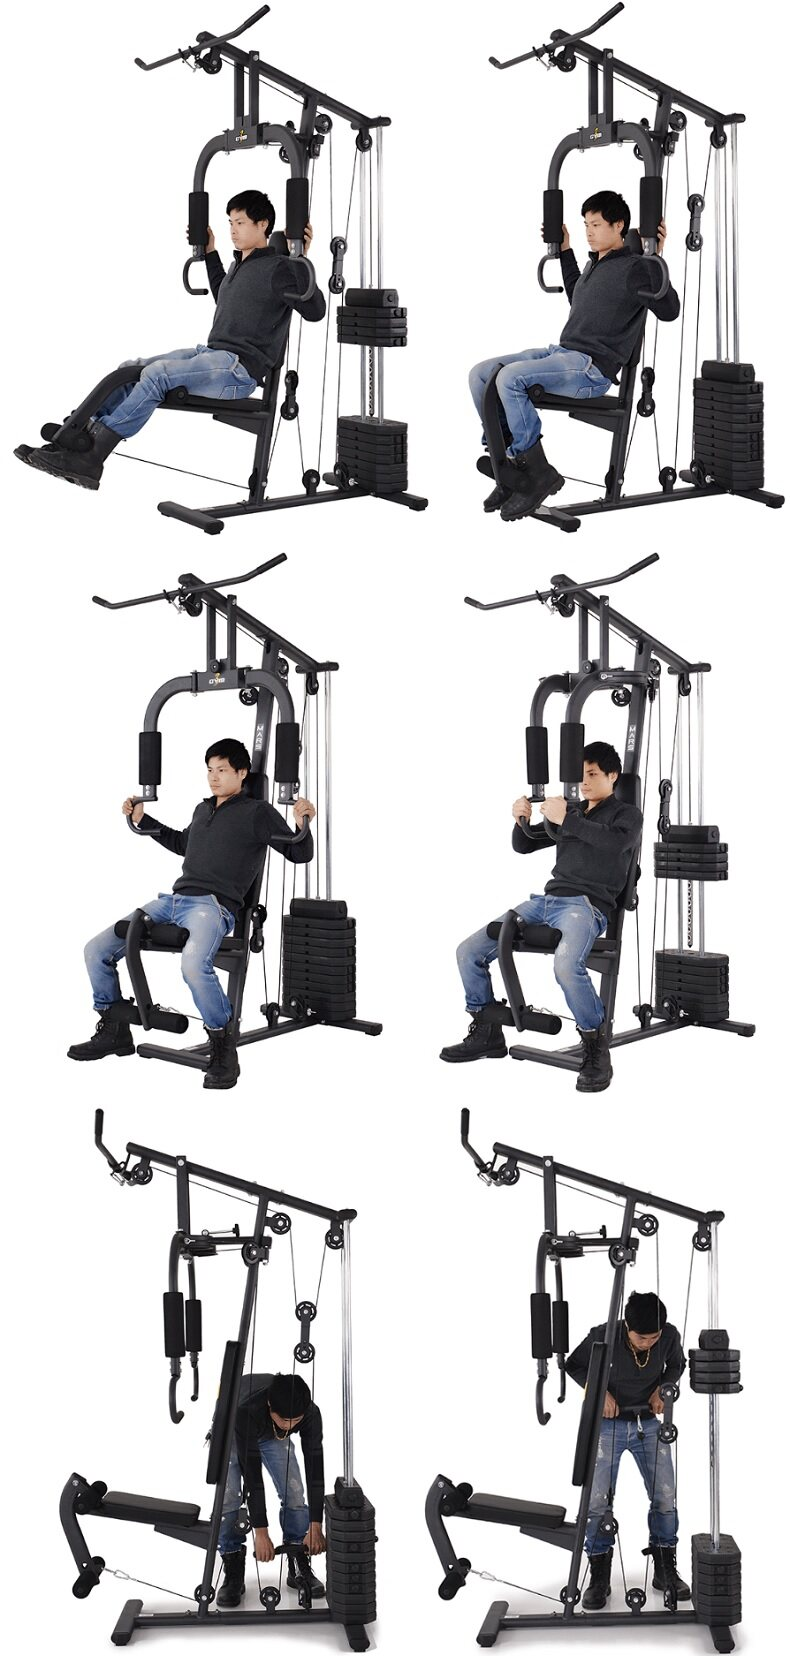 F multi function home gym station fitness workout press machine